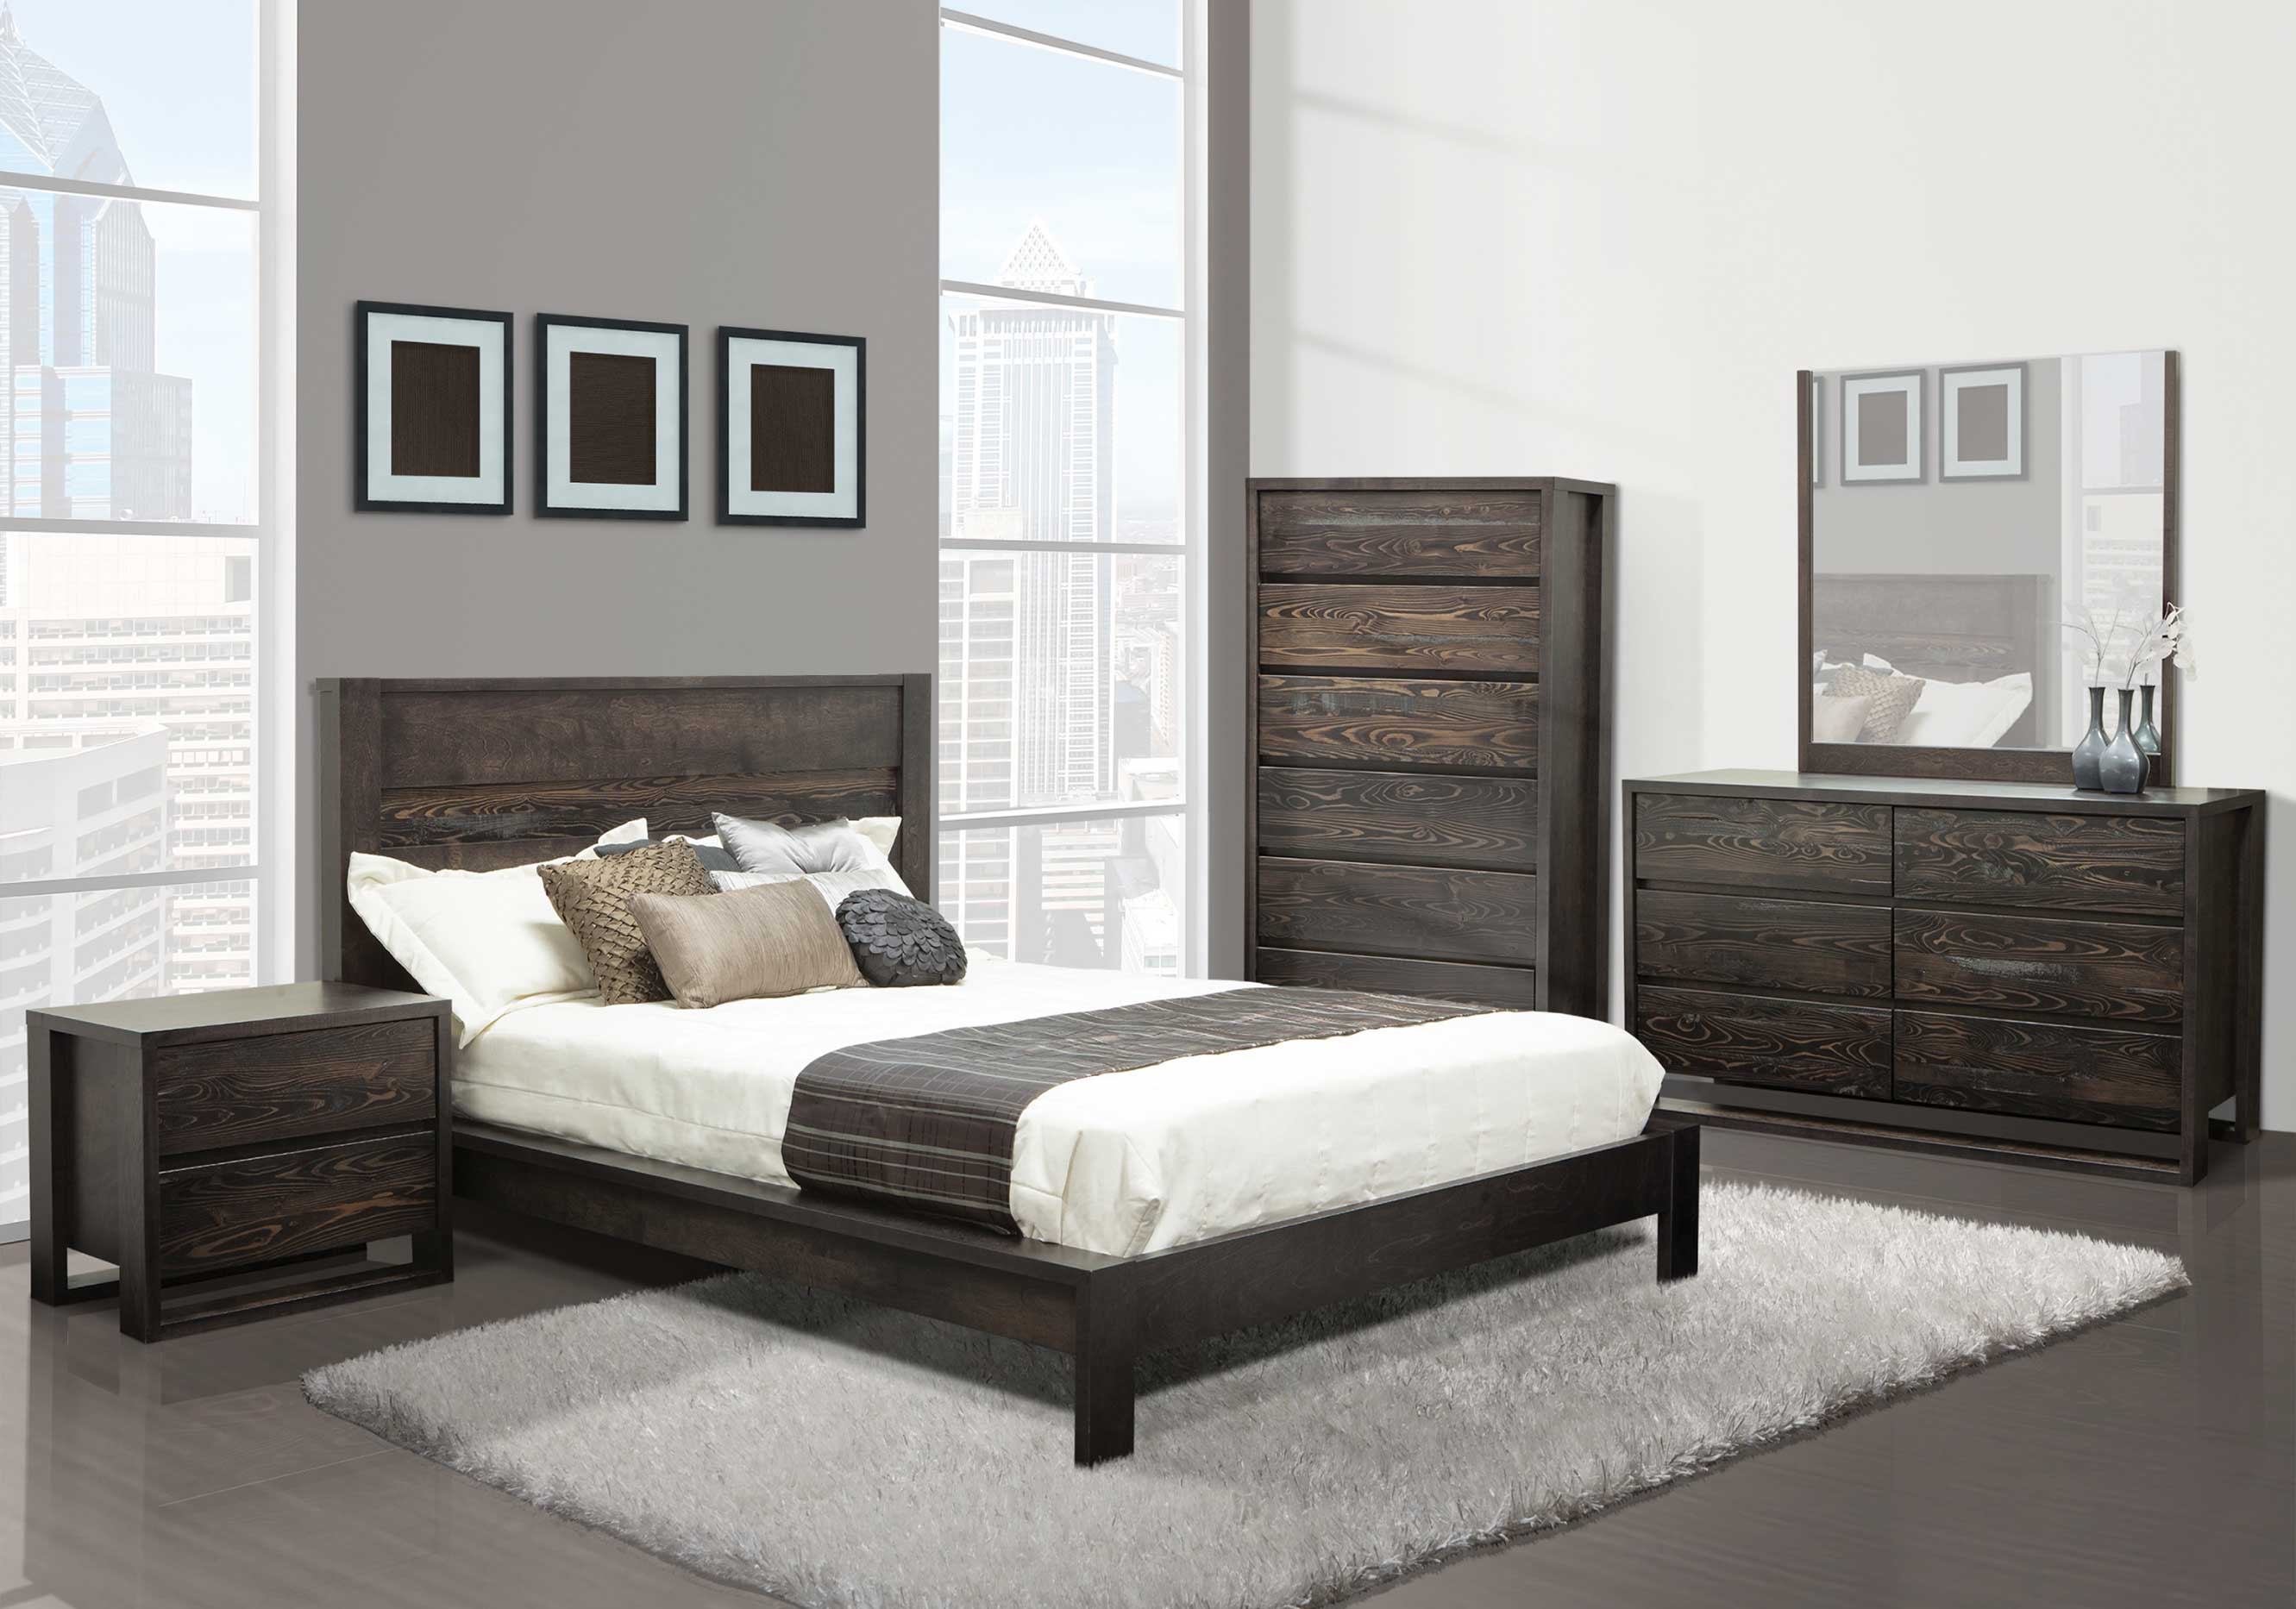 viebois catalogue chambres coucher 900. Black Bedroom Furniture Sets. Home Design Ideas